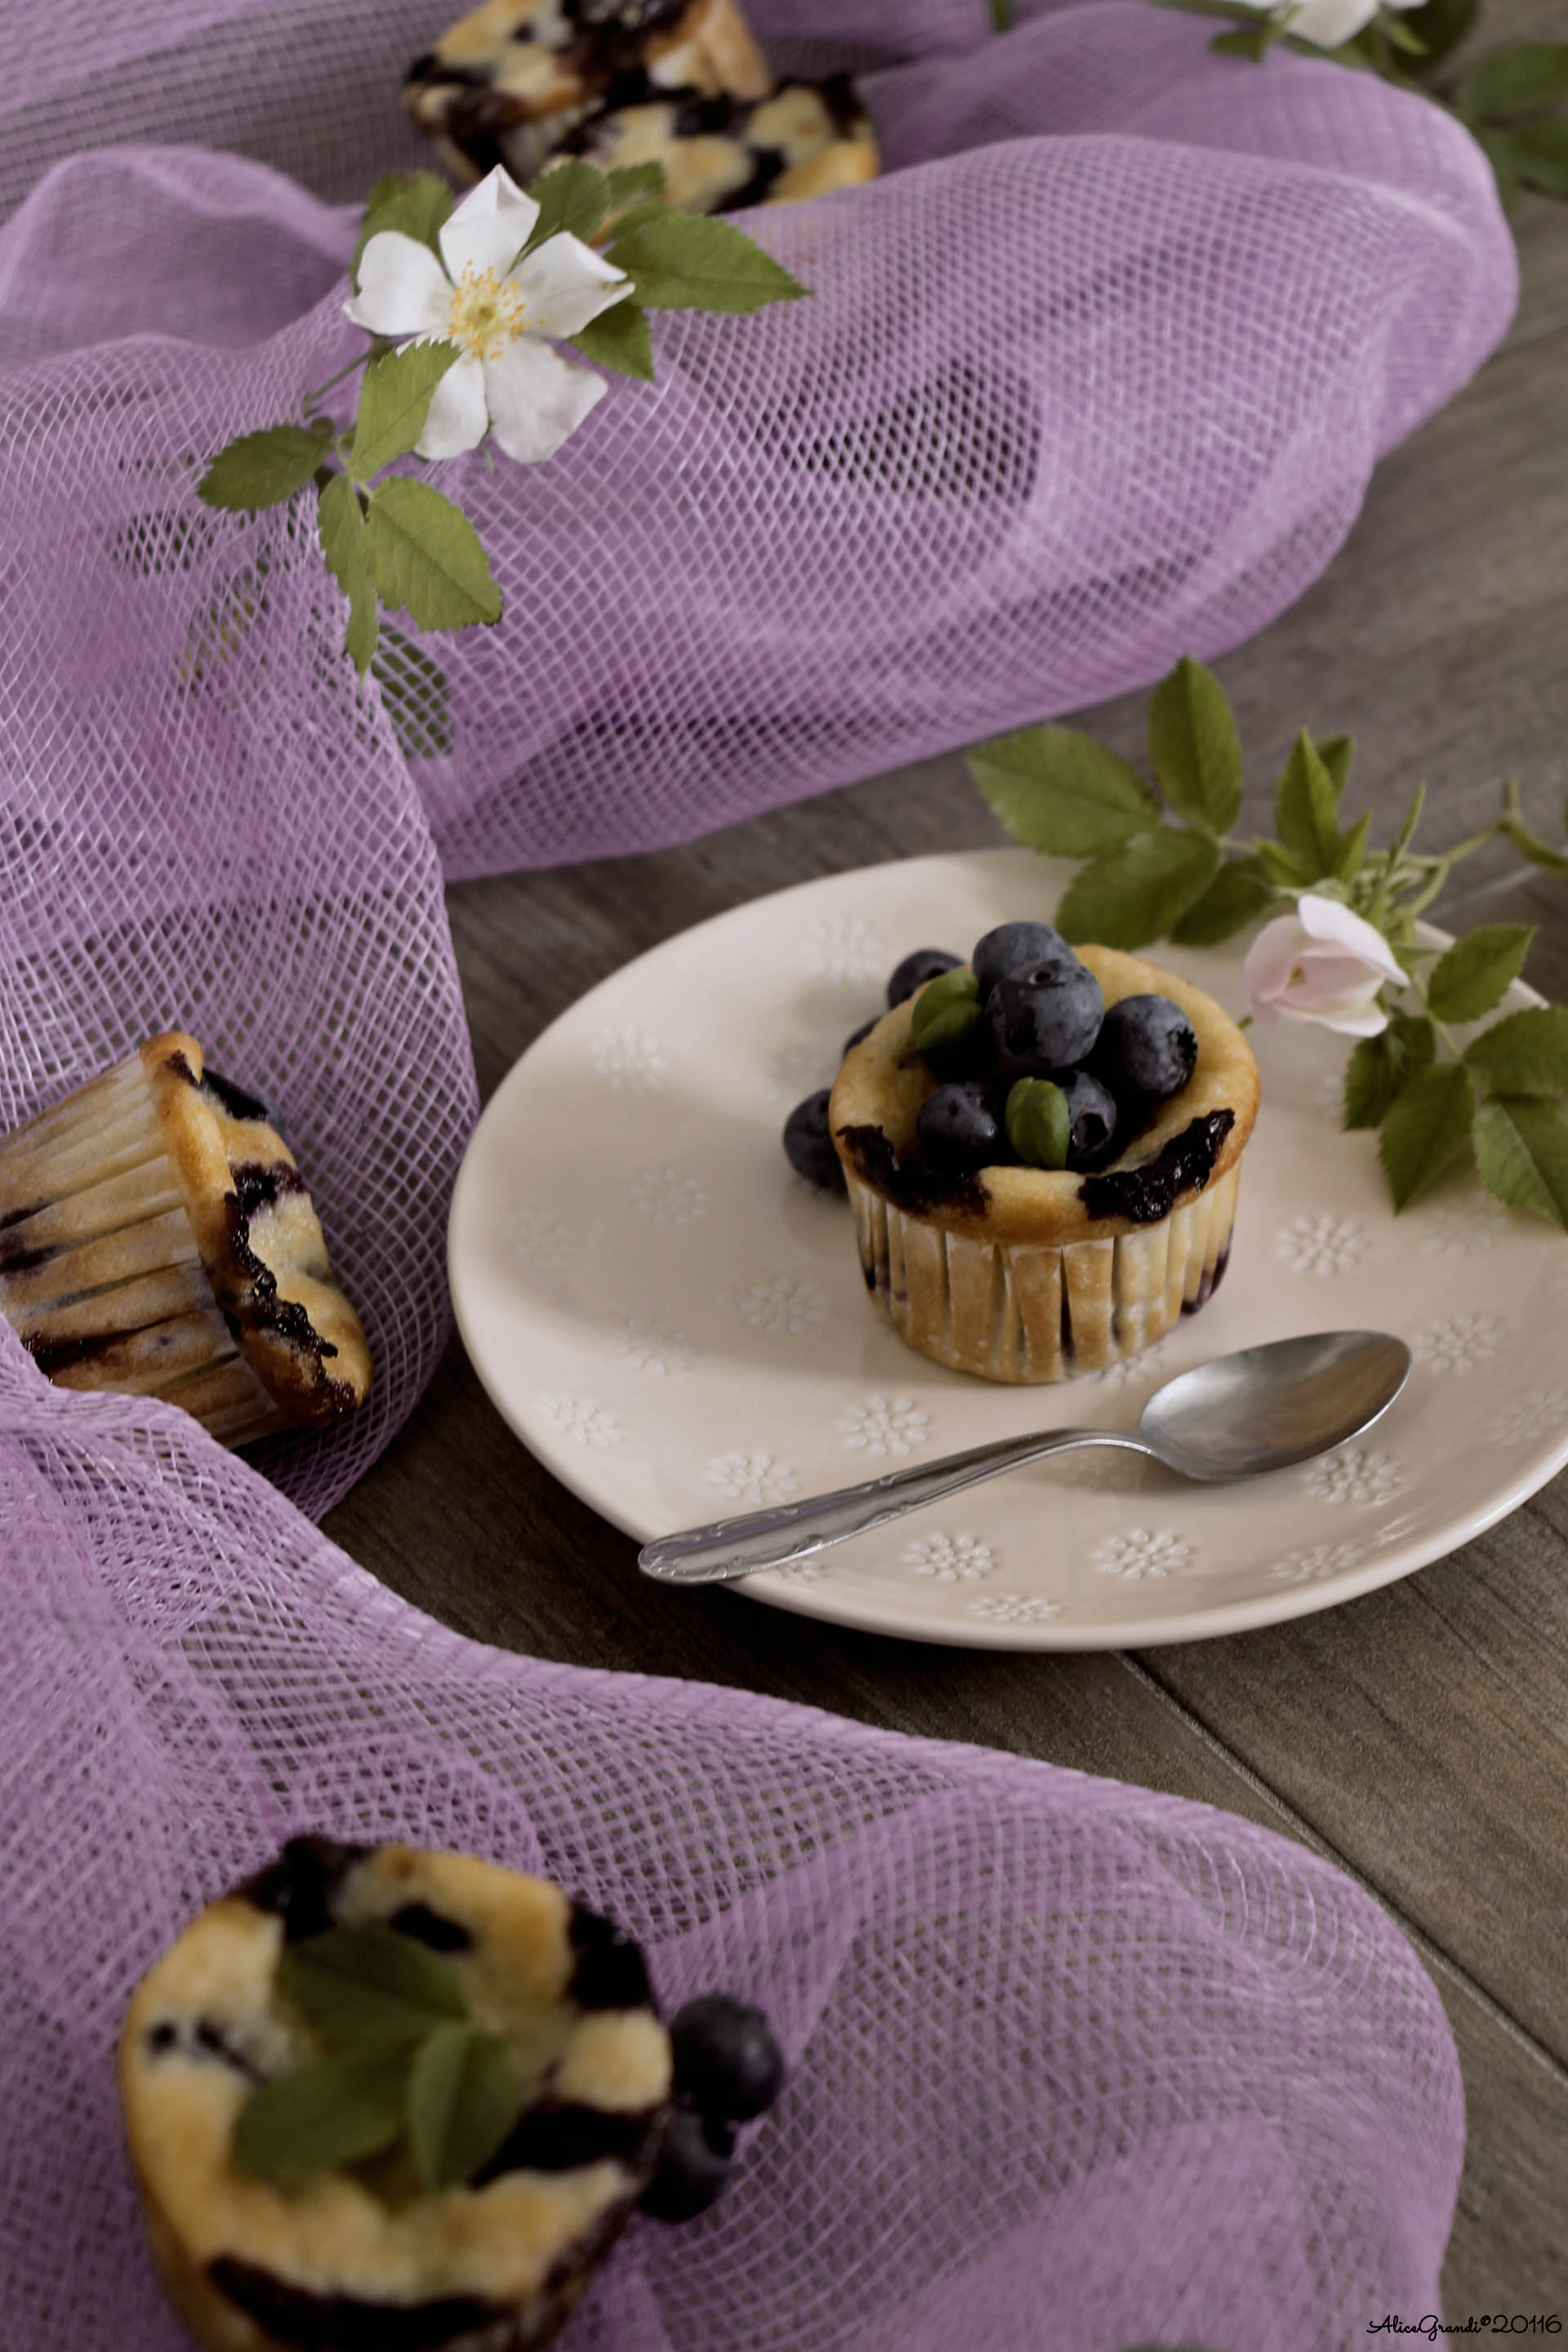 muffin-seaenzaglutine-yogurt-mirtilli-glutenfree-blueberry-muffins